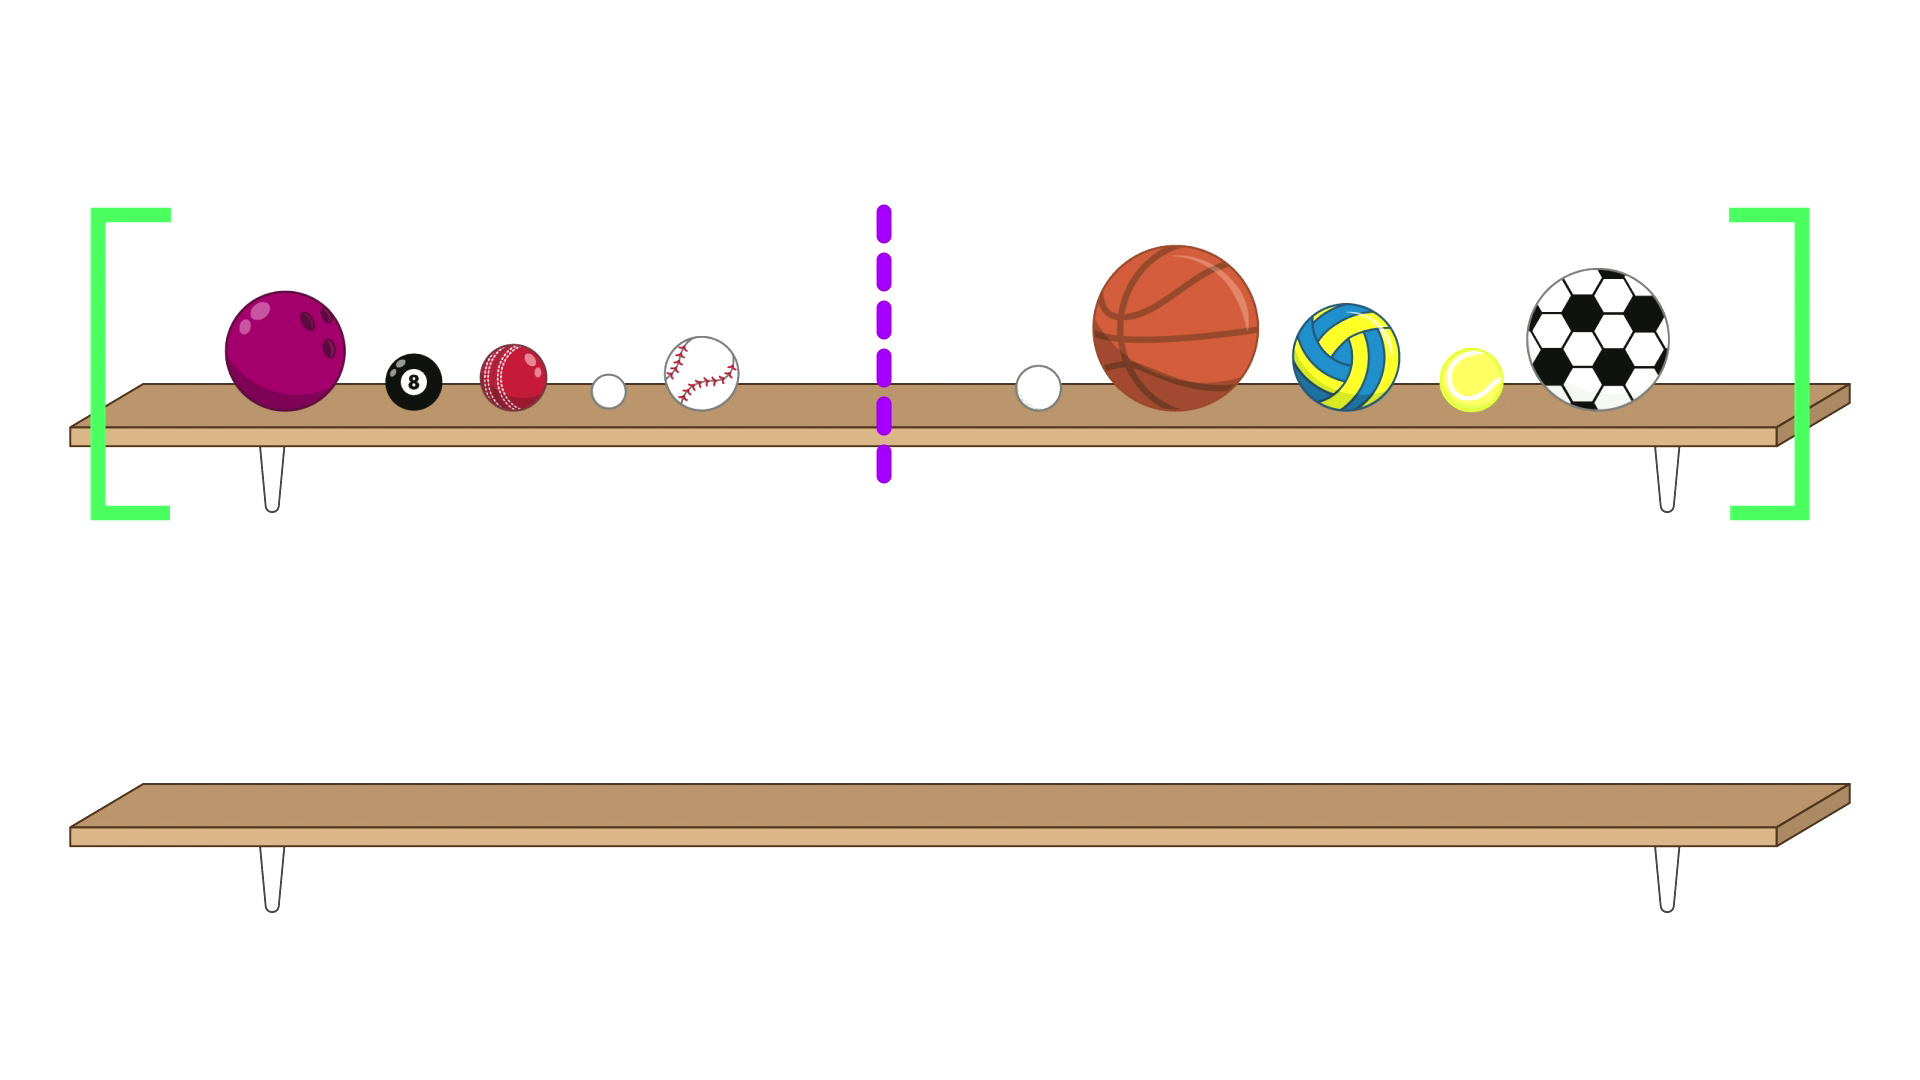 The same 10 balls on the shelf in the same order as above, but split into two groups of five by a dashed purple line in-between the baseball and the golf ball. The balls are now all contained within a pair of green square brackets. There is an empty shelf below.